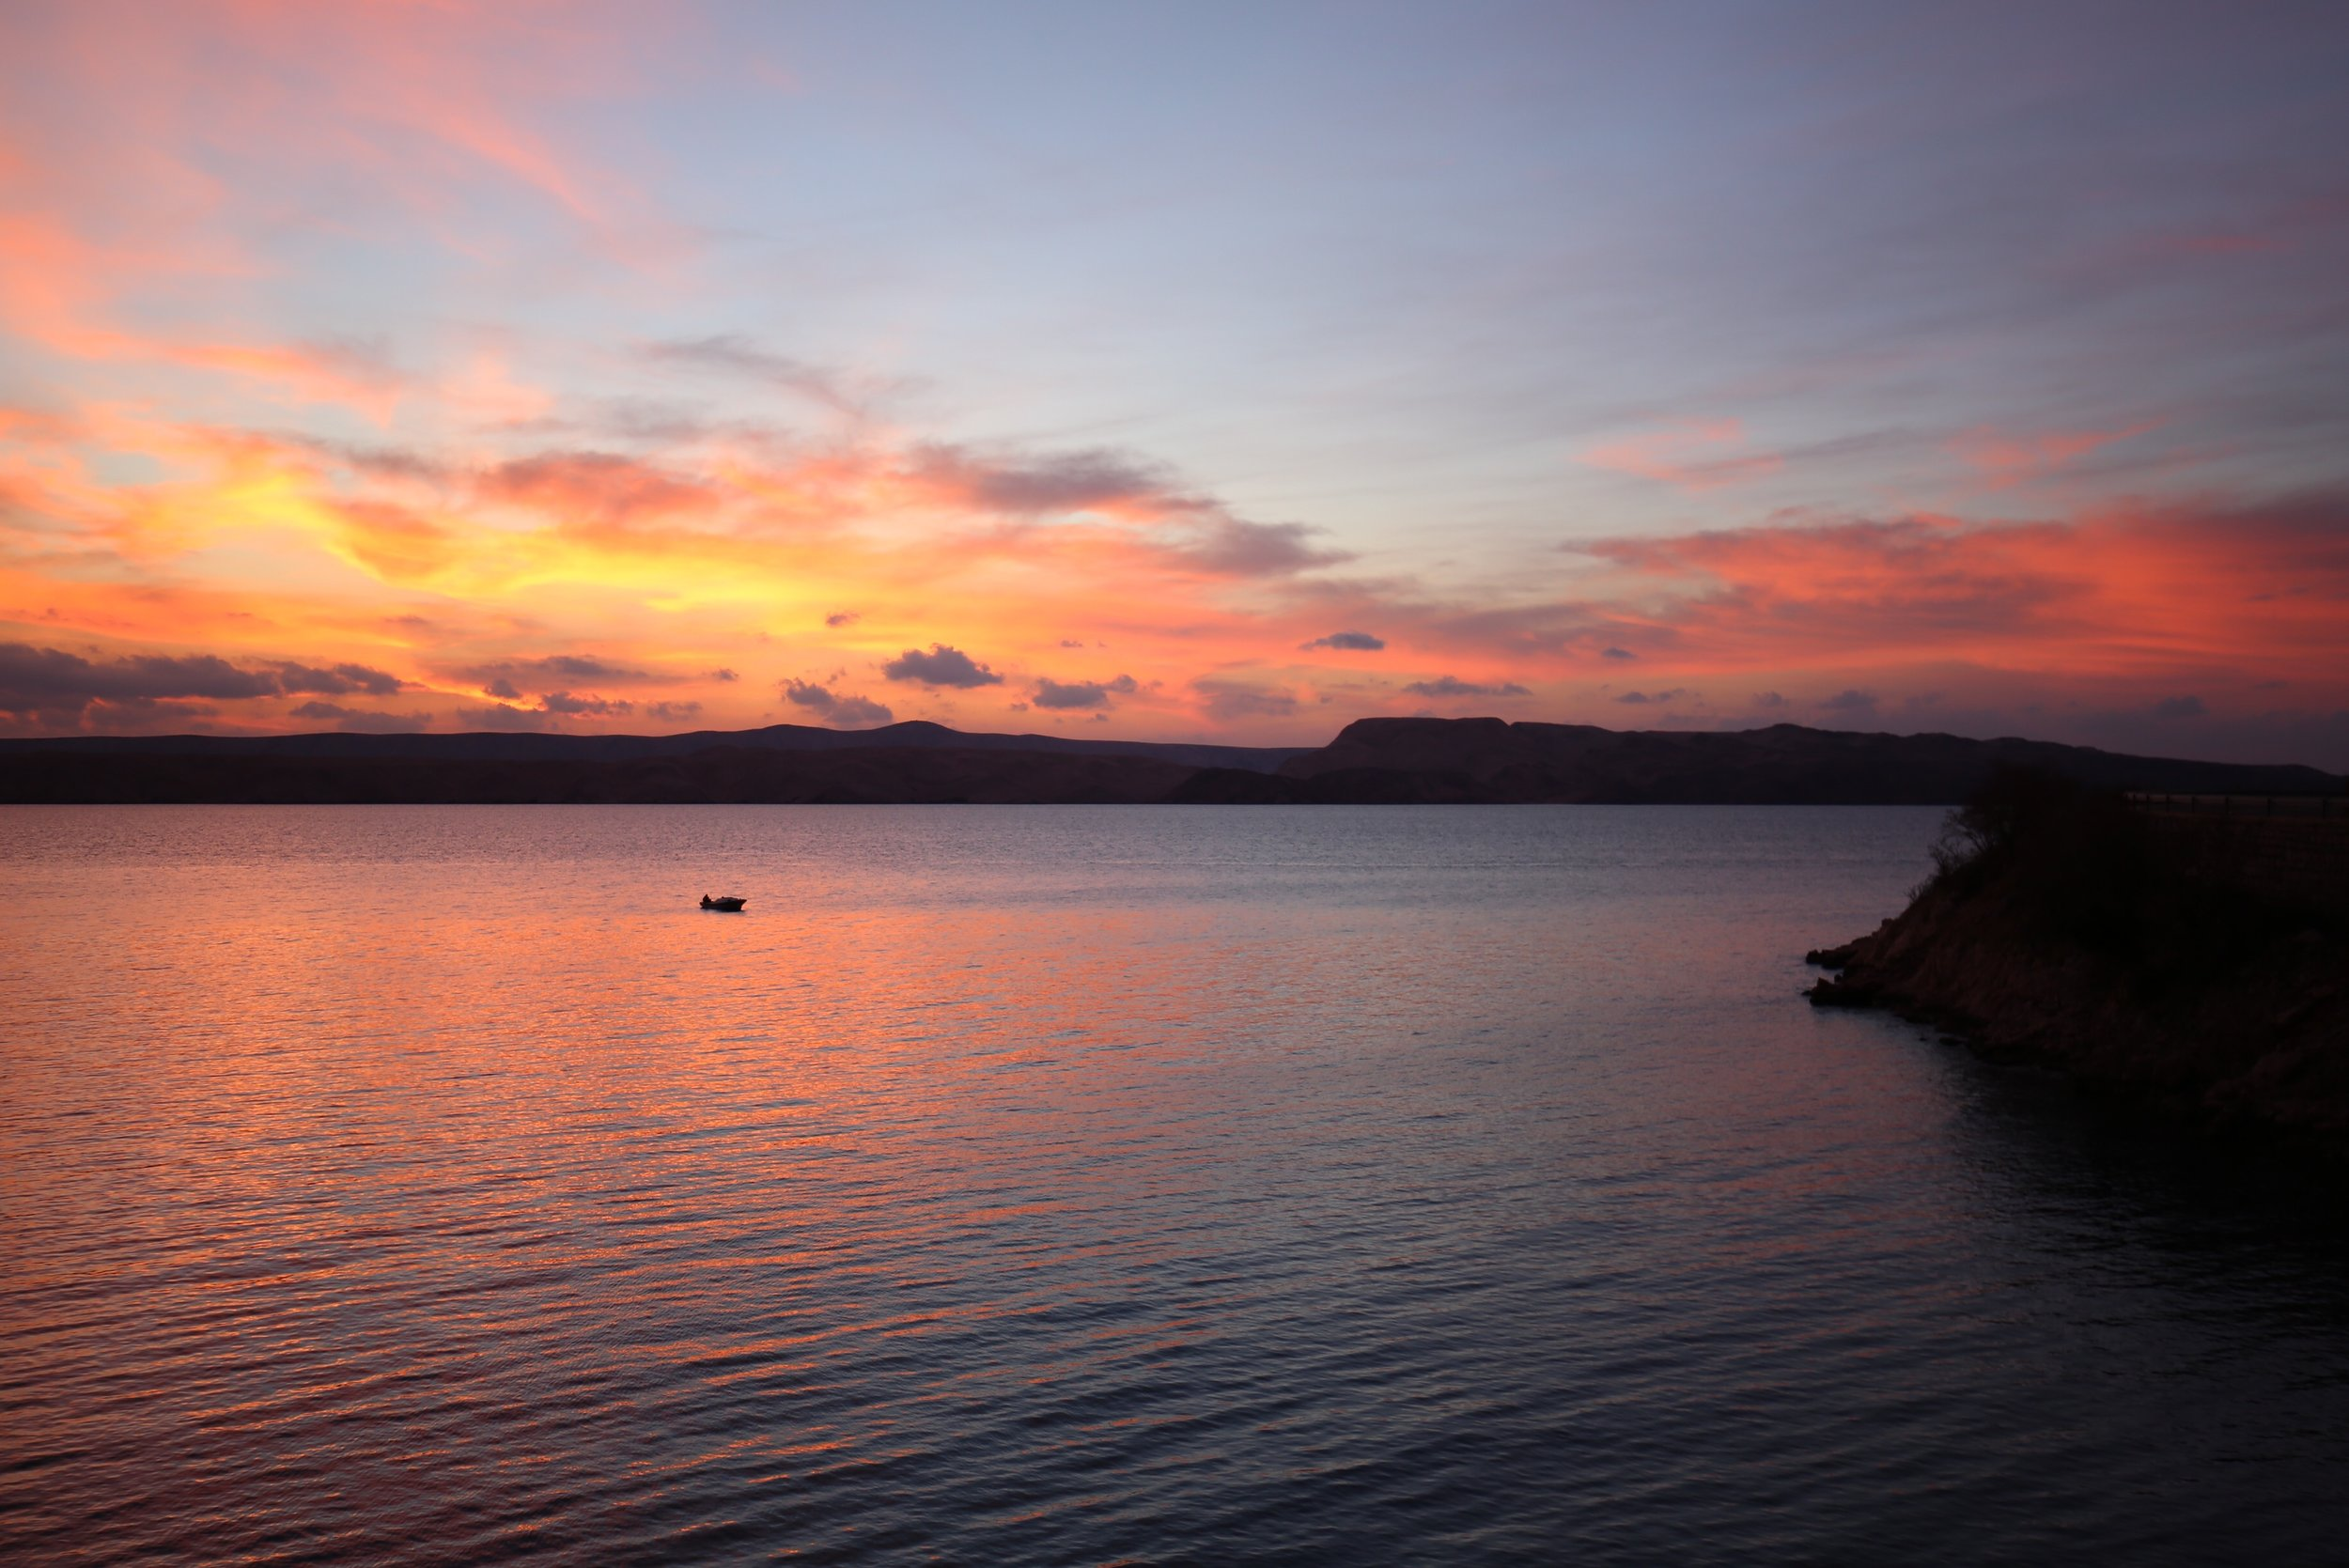 A fishing boat returns to the cove at sunset, Croatia.